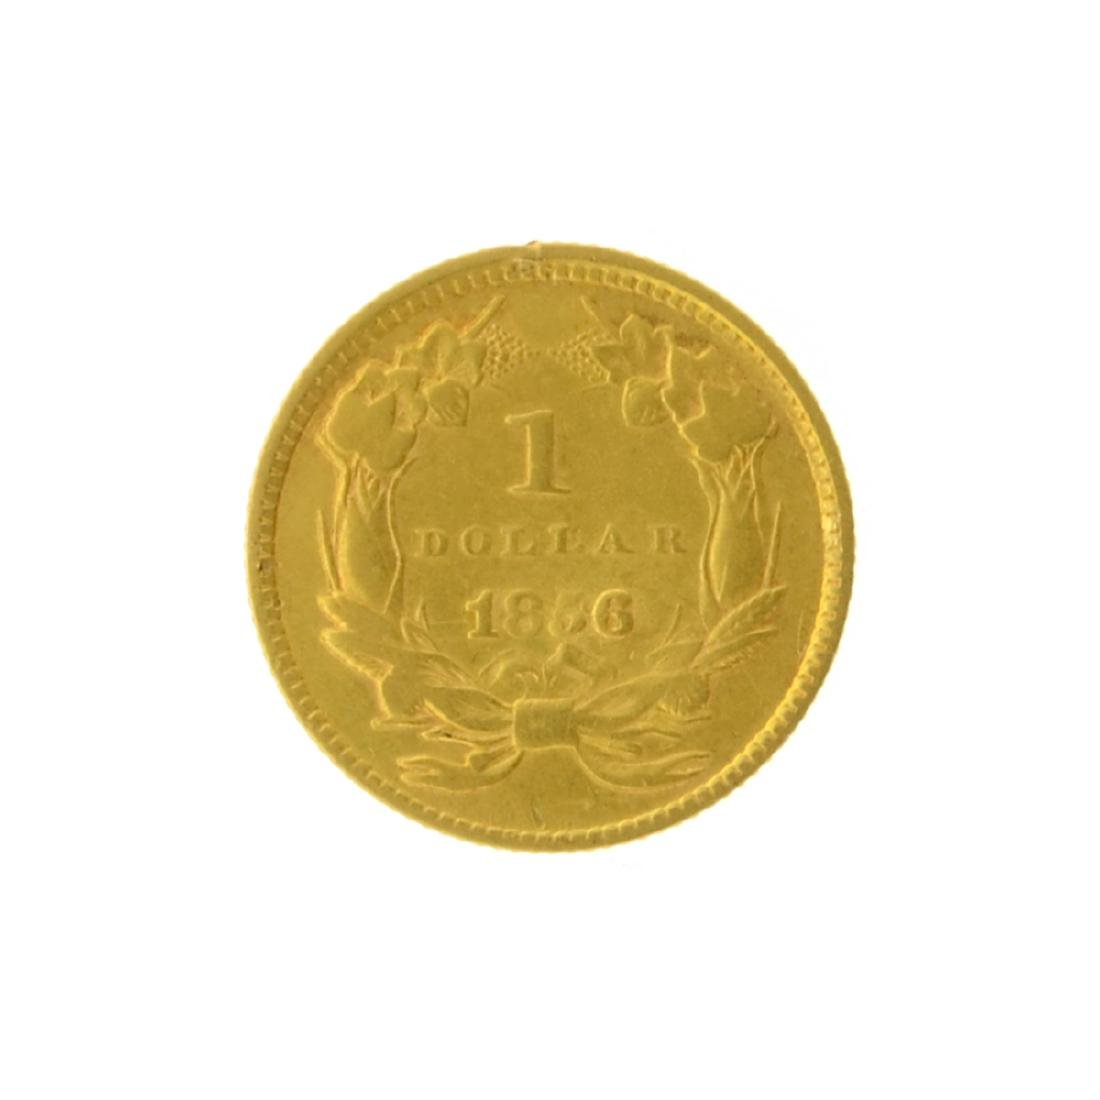 1856 $1 Large Indian Head Gold Coin - 2